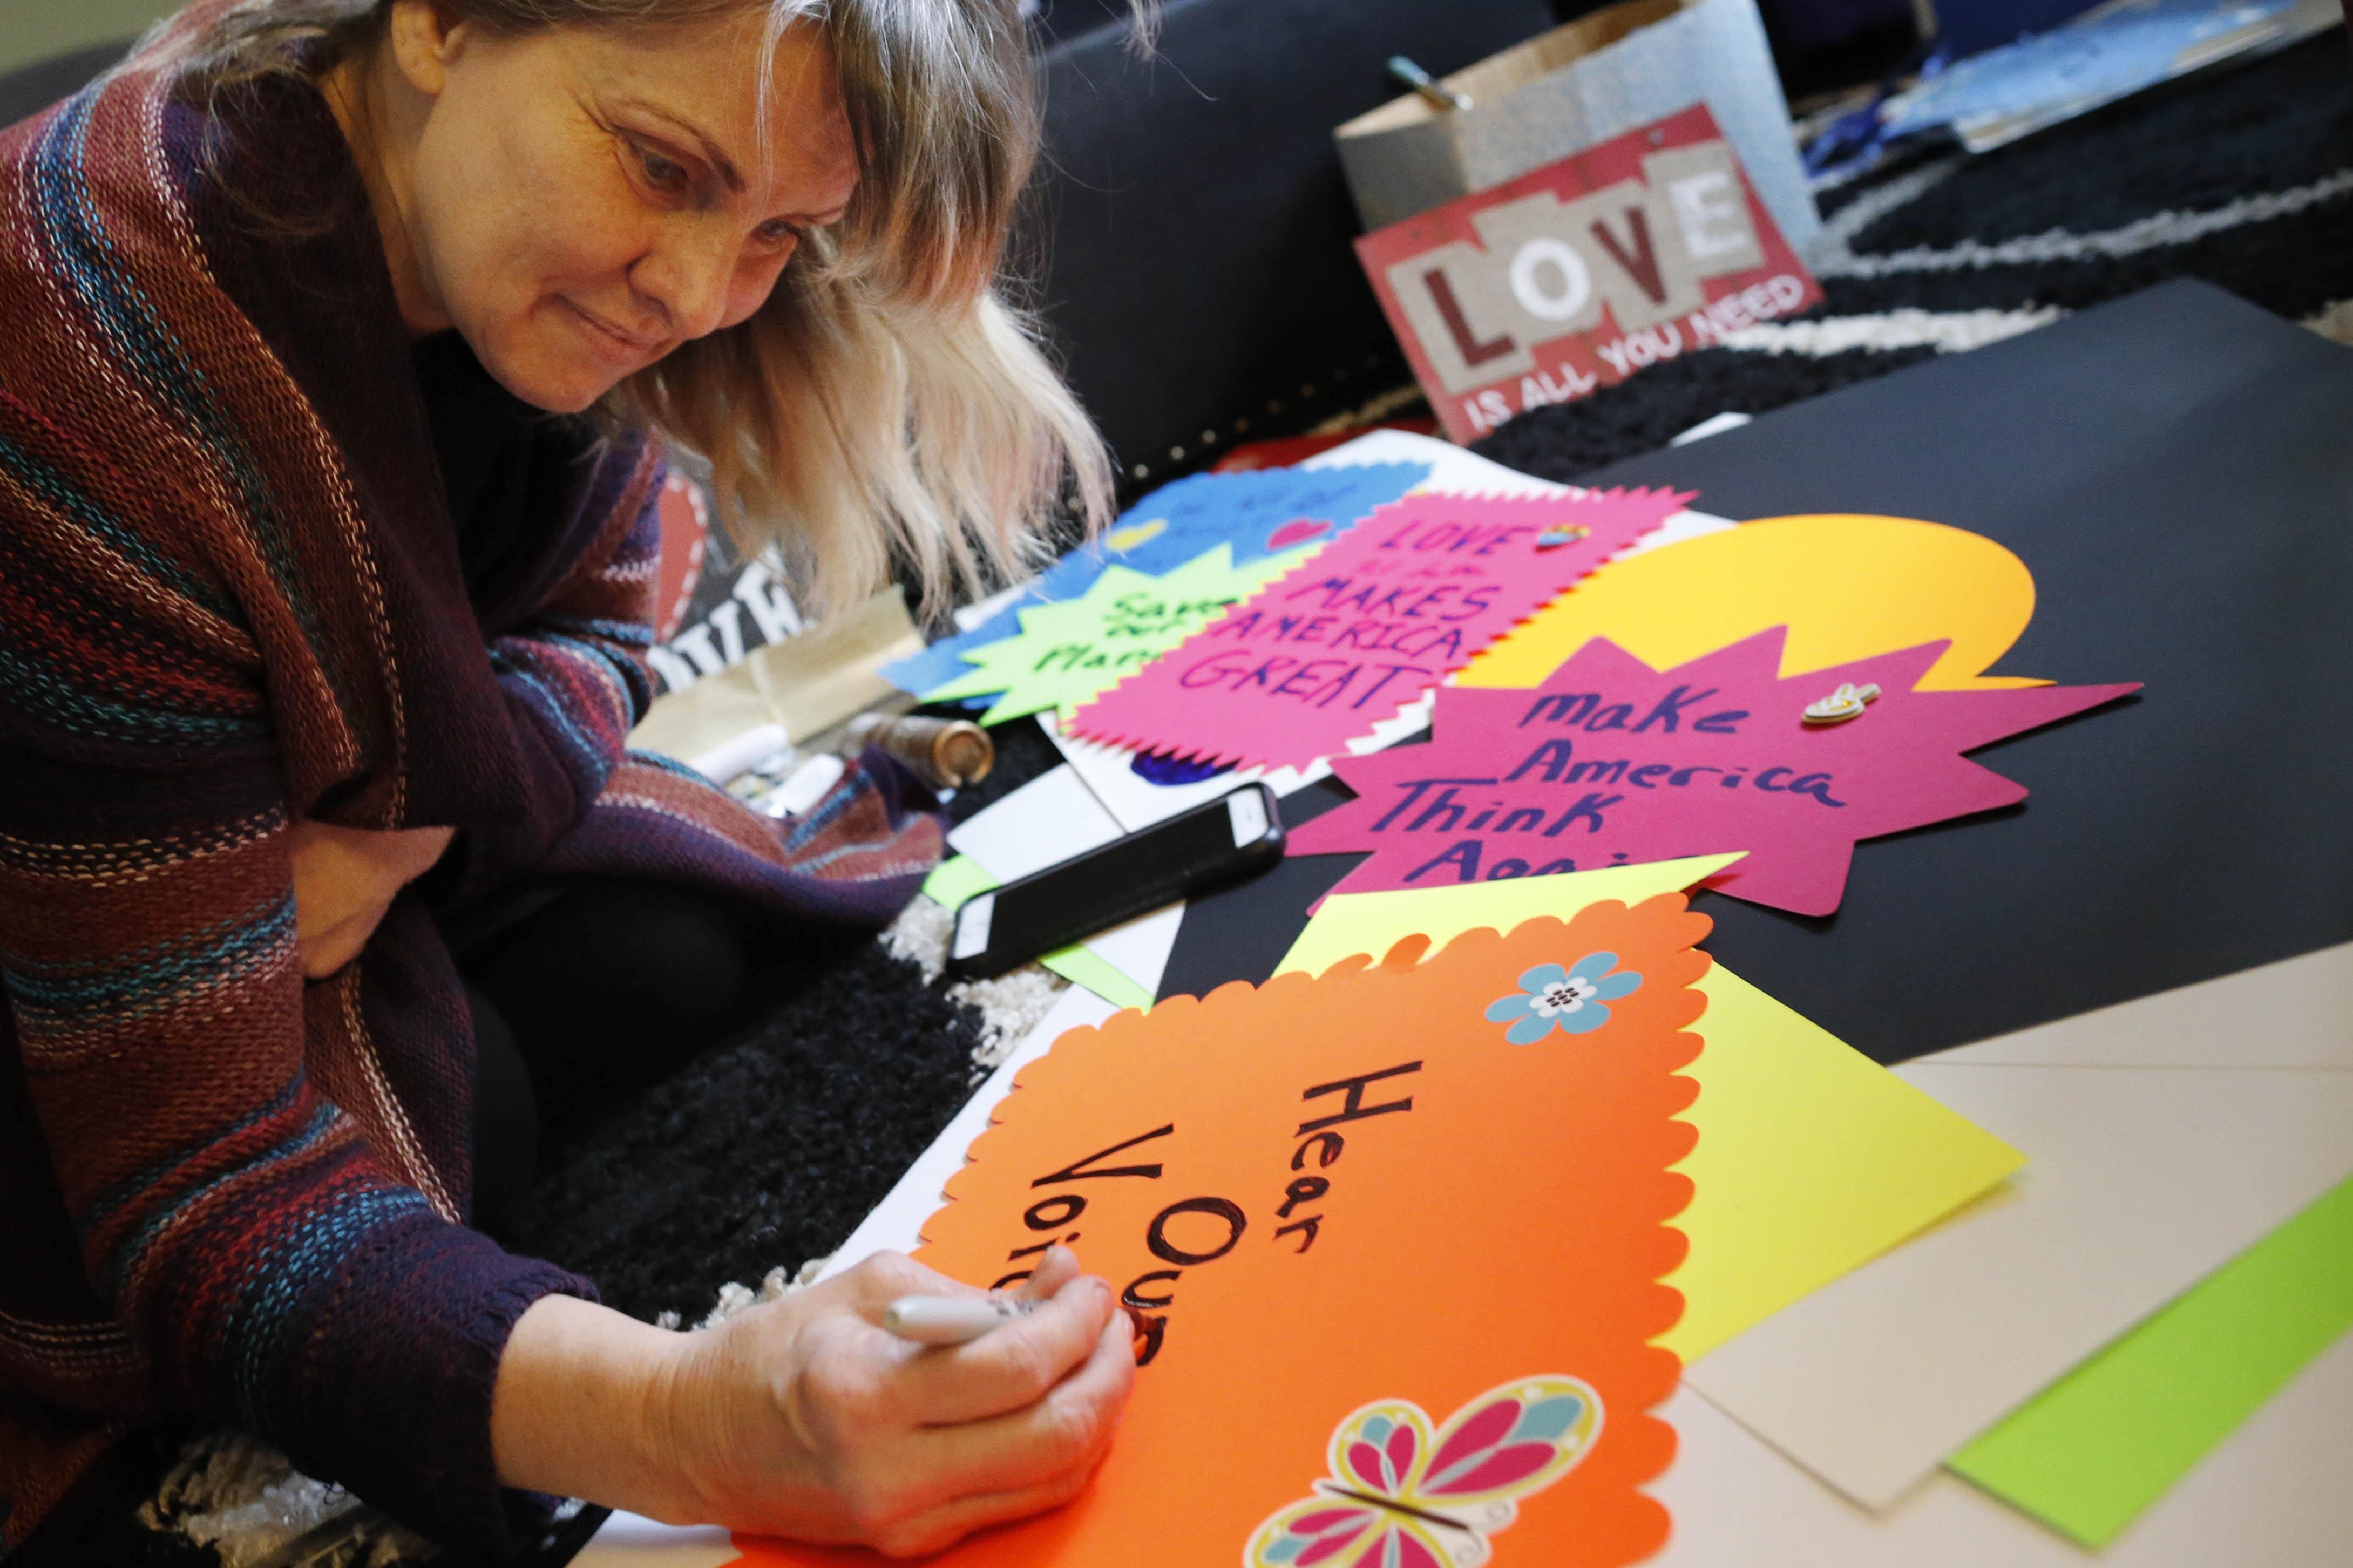 Lisa Jo Schaeffer makes signs while preparing for the Women's March on Washington on Saturday, Jan.  21, 2017. Schaeffer has organized a bus to carry protesters from Buffalo to Washington, D.C., to attend. She was making signs for the demonstration on  Tuesday, Jan. 17, 2017.  (Derek Gee/Buffalo News)